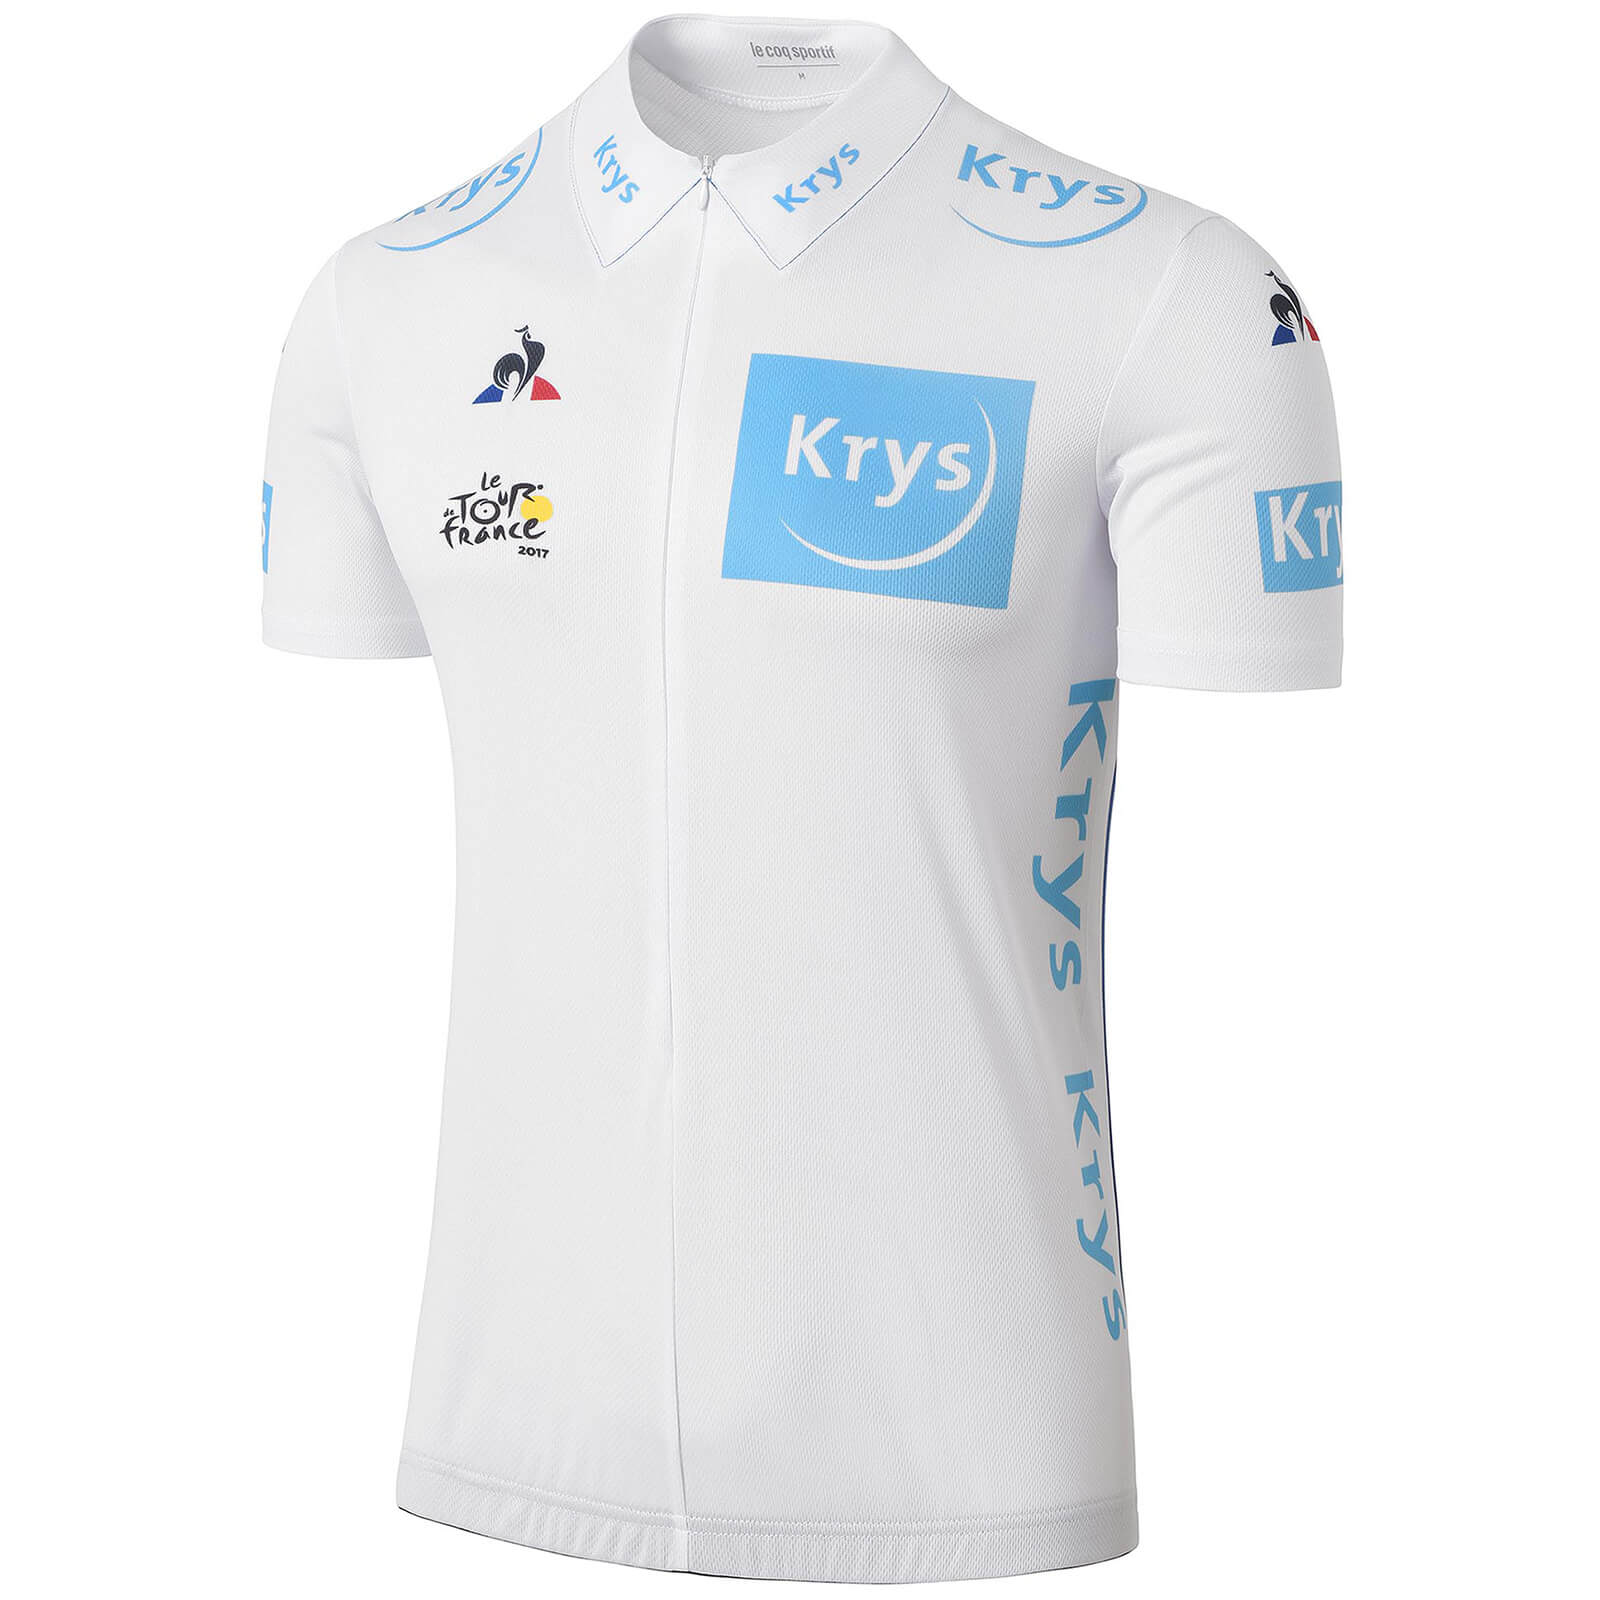 Le Coq Sportif Tour de France 2017 Young Riders Classification Official Jersey - White